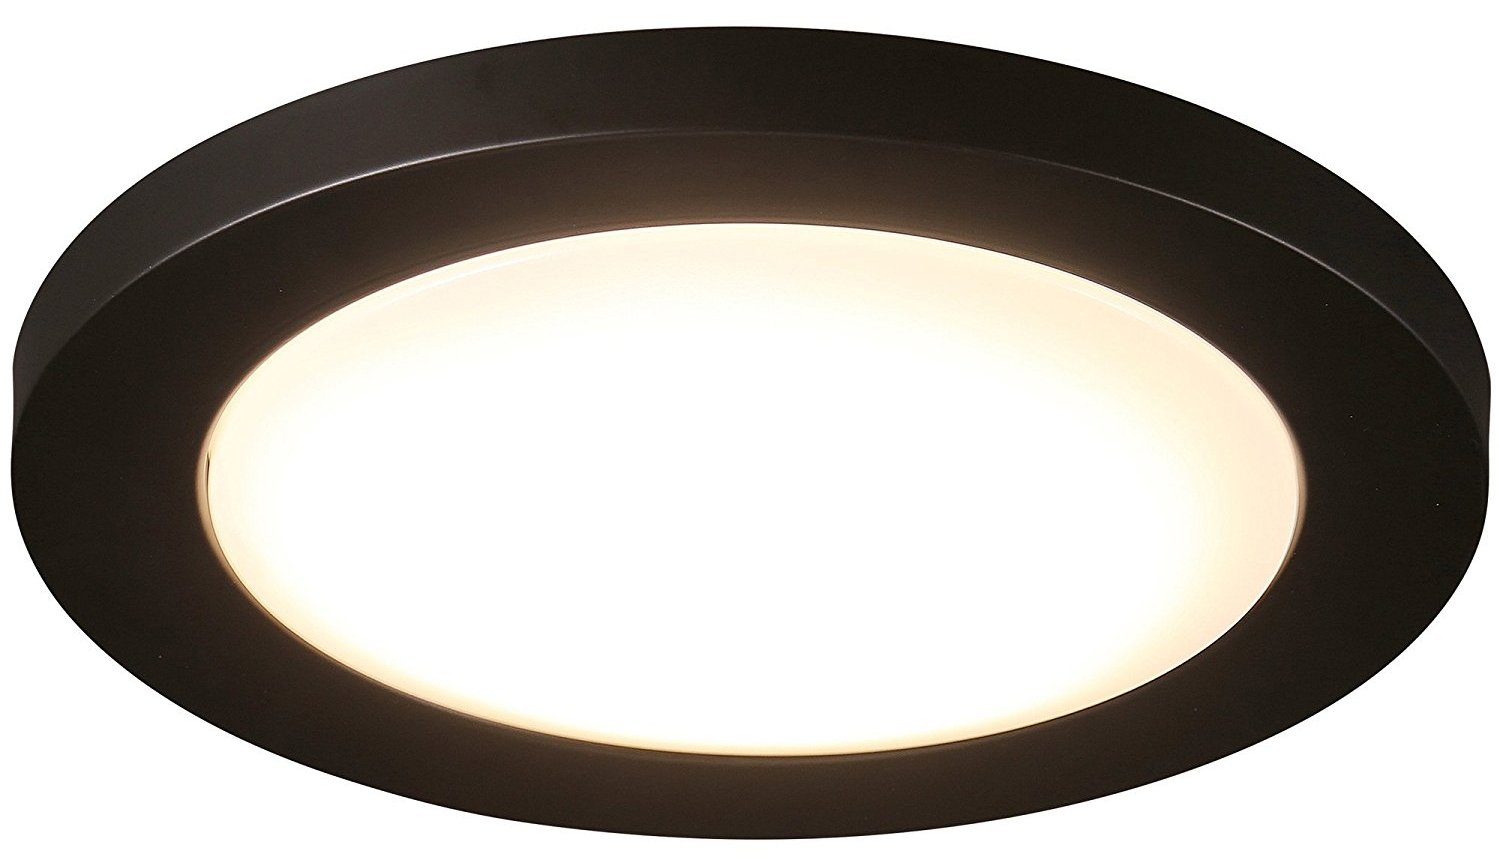 Cloudy Bay 12 inch LED Flush Mount Ceiling Light 4000K Cool White Dimmable 17W 1100lm -120W Incandescent Equivalent,Oil Rubbed Bronze Finished